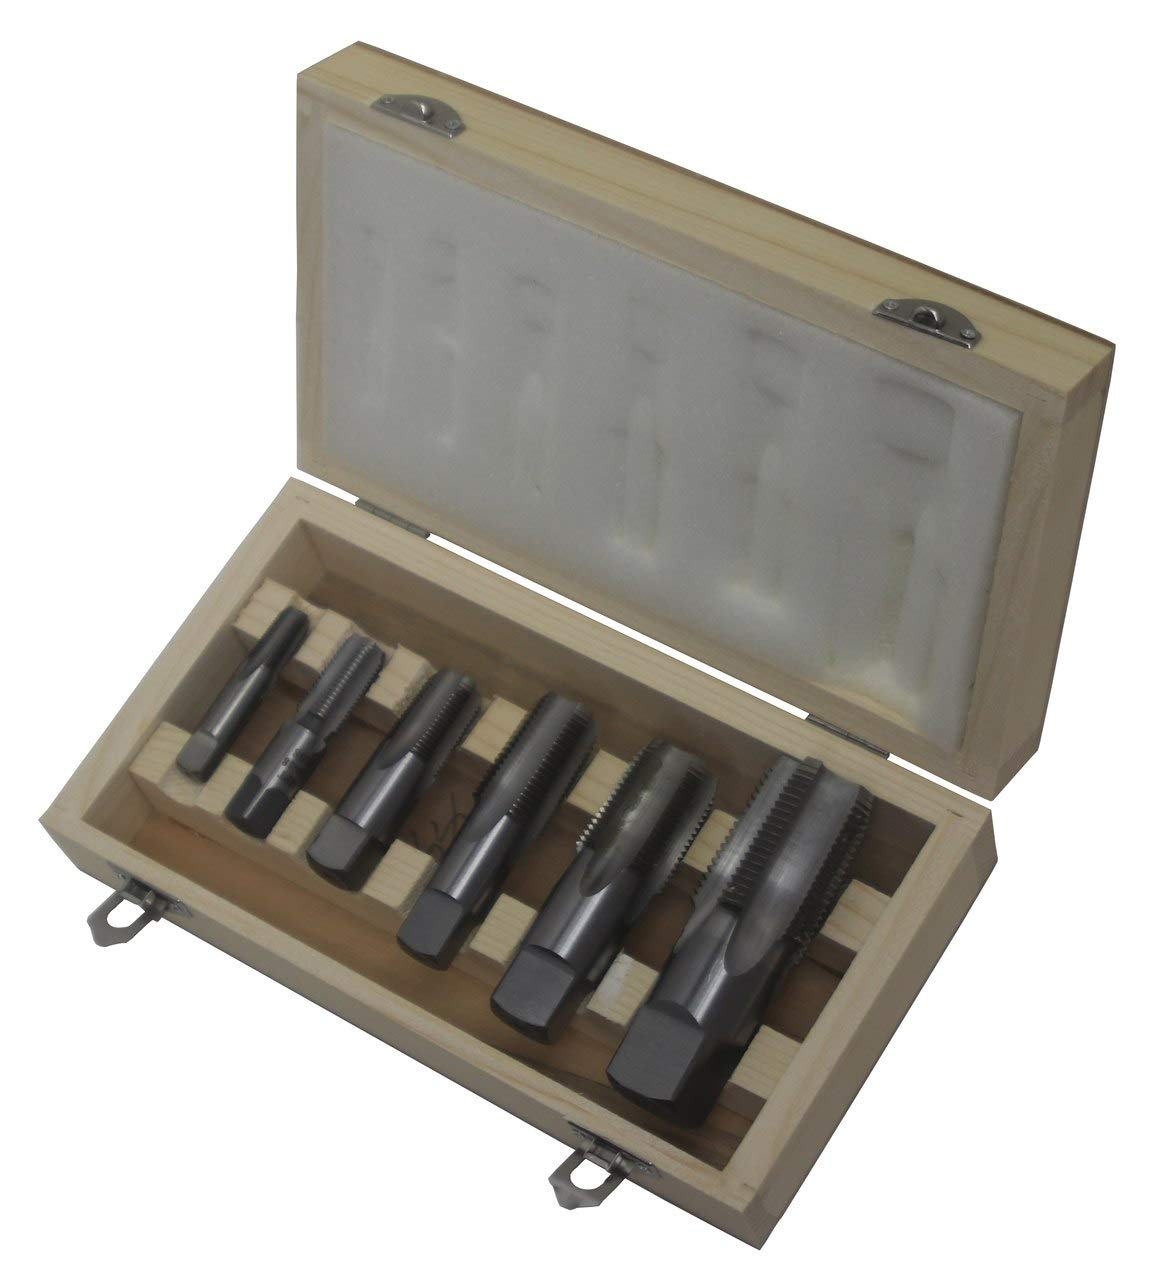 Drill America 6 Piece NPT Pipe Tap, Carbon Steel, DWTPT Series Set 1/4'', 3/8'', 1/2'', 3/4'', 1'' and 1-1/4'' in Wooden Case by Drill America